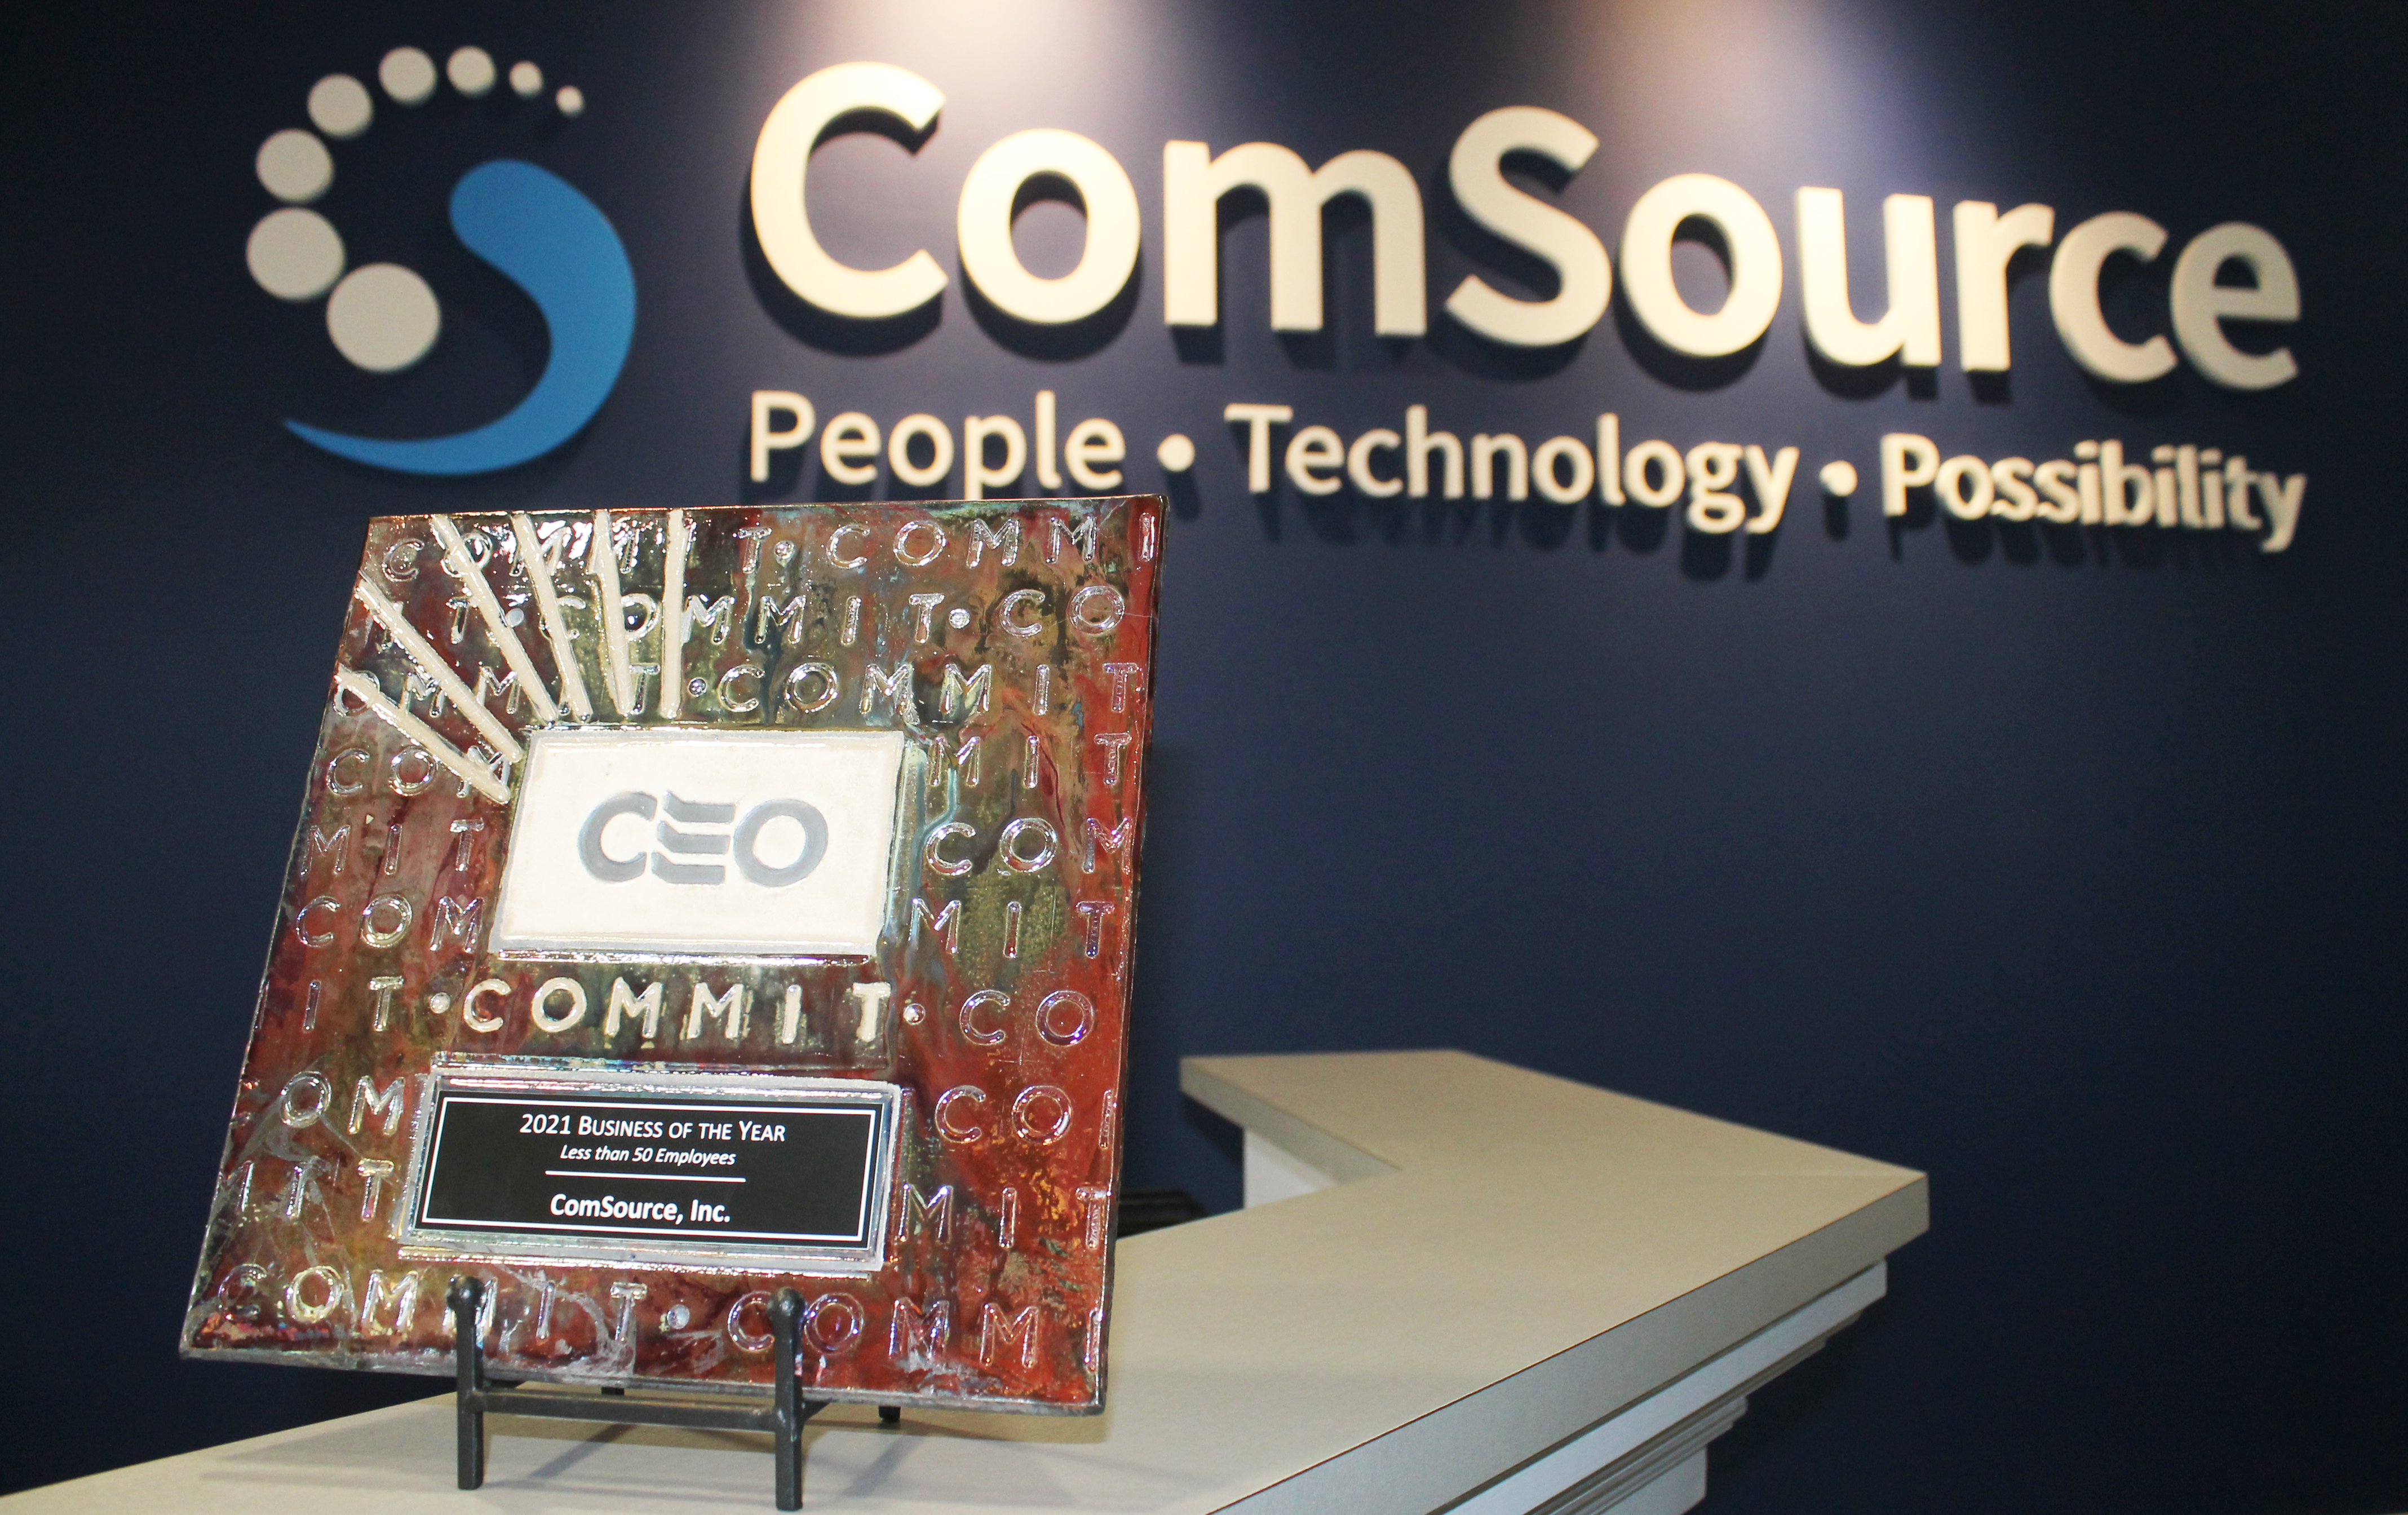 CS CEO Business of the Year 2021 -  Less Than 50 Employees - ComSource